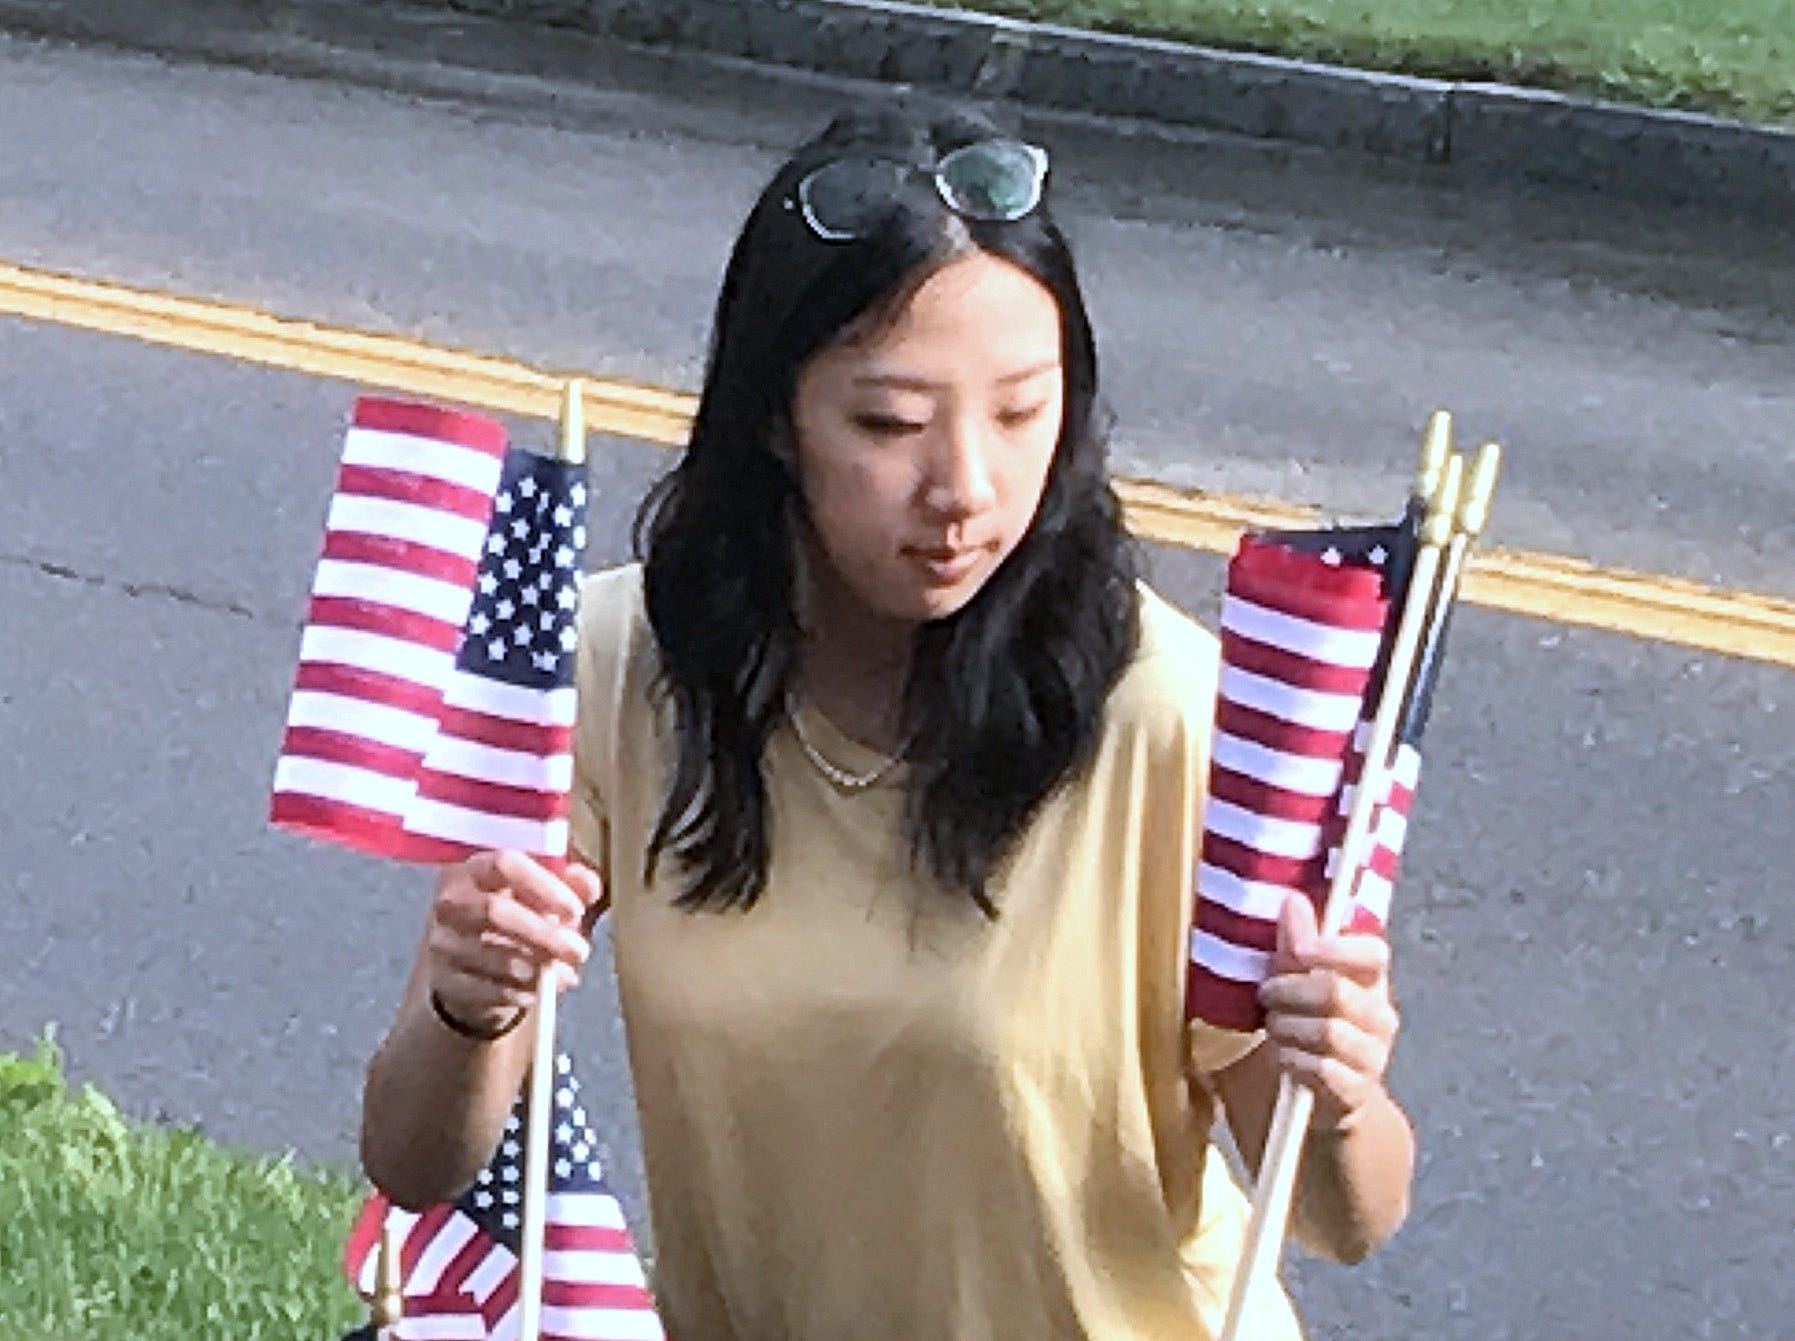 Elmira College student Olivia Cacchione, of Sterling, New York, plants American flags along Park Place in Elmira on Tuesday to commemorate the 17th anniversary of the Sept. 11, 2001 terrorist attacks.